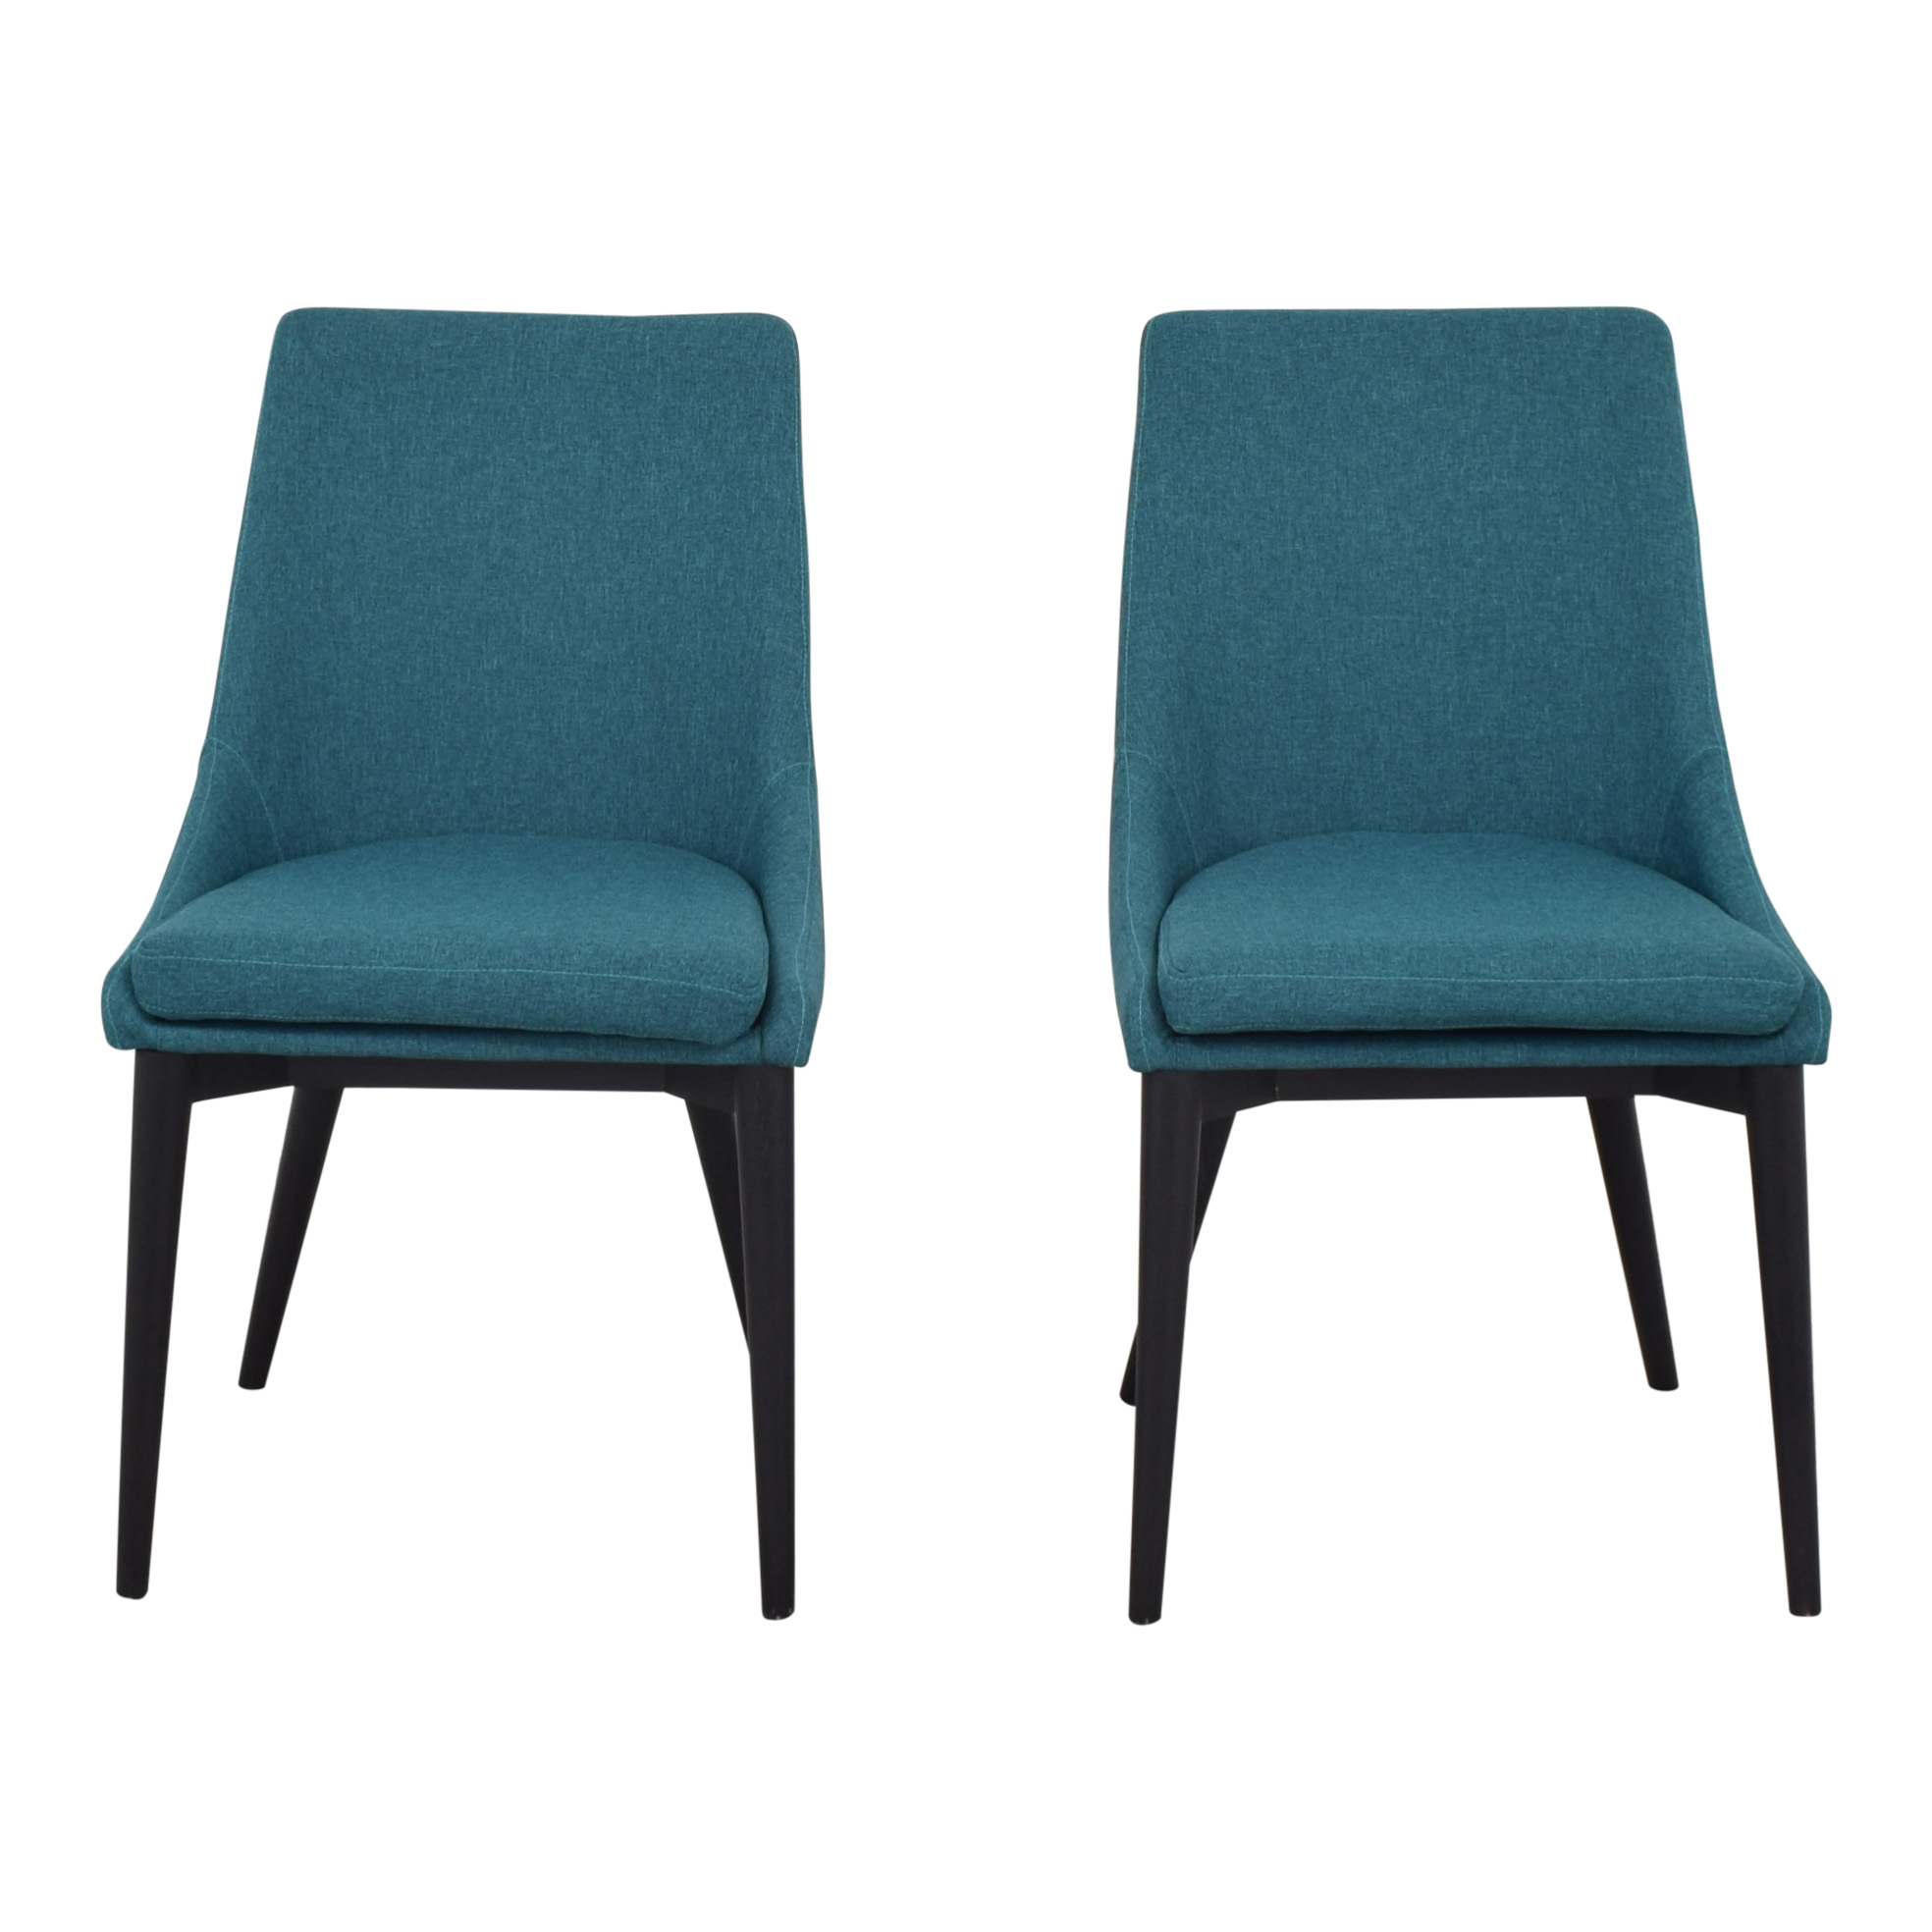 shop Modway Modway Viscount Dining Chairs online